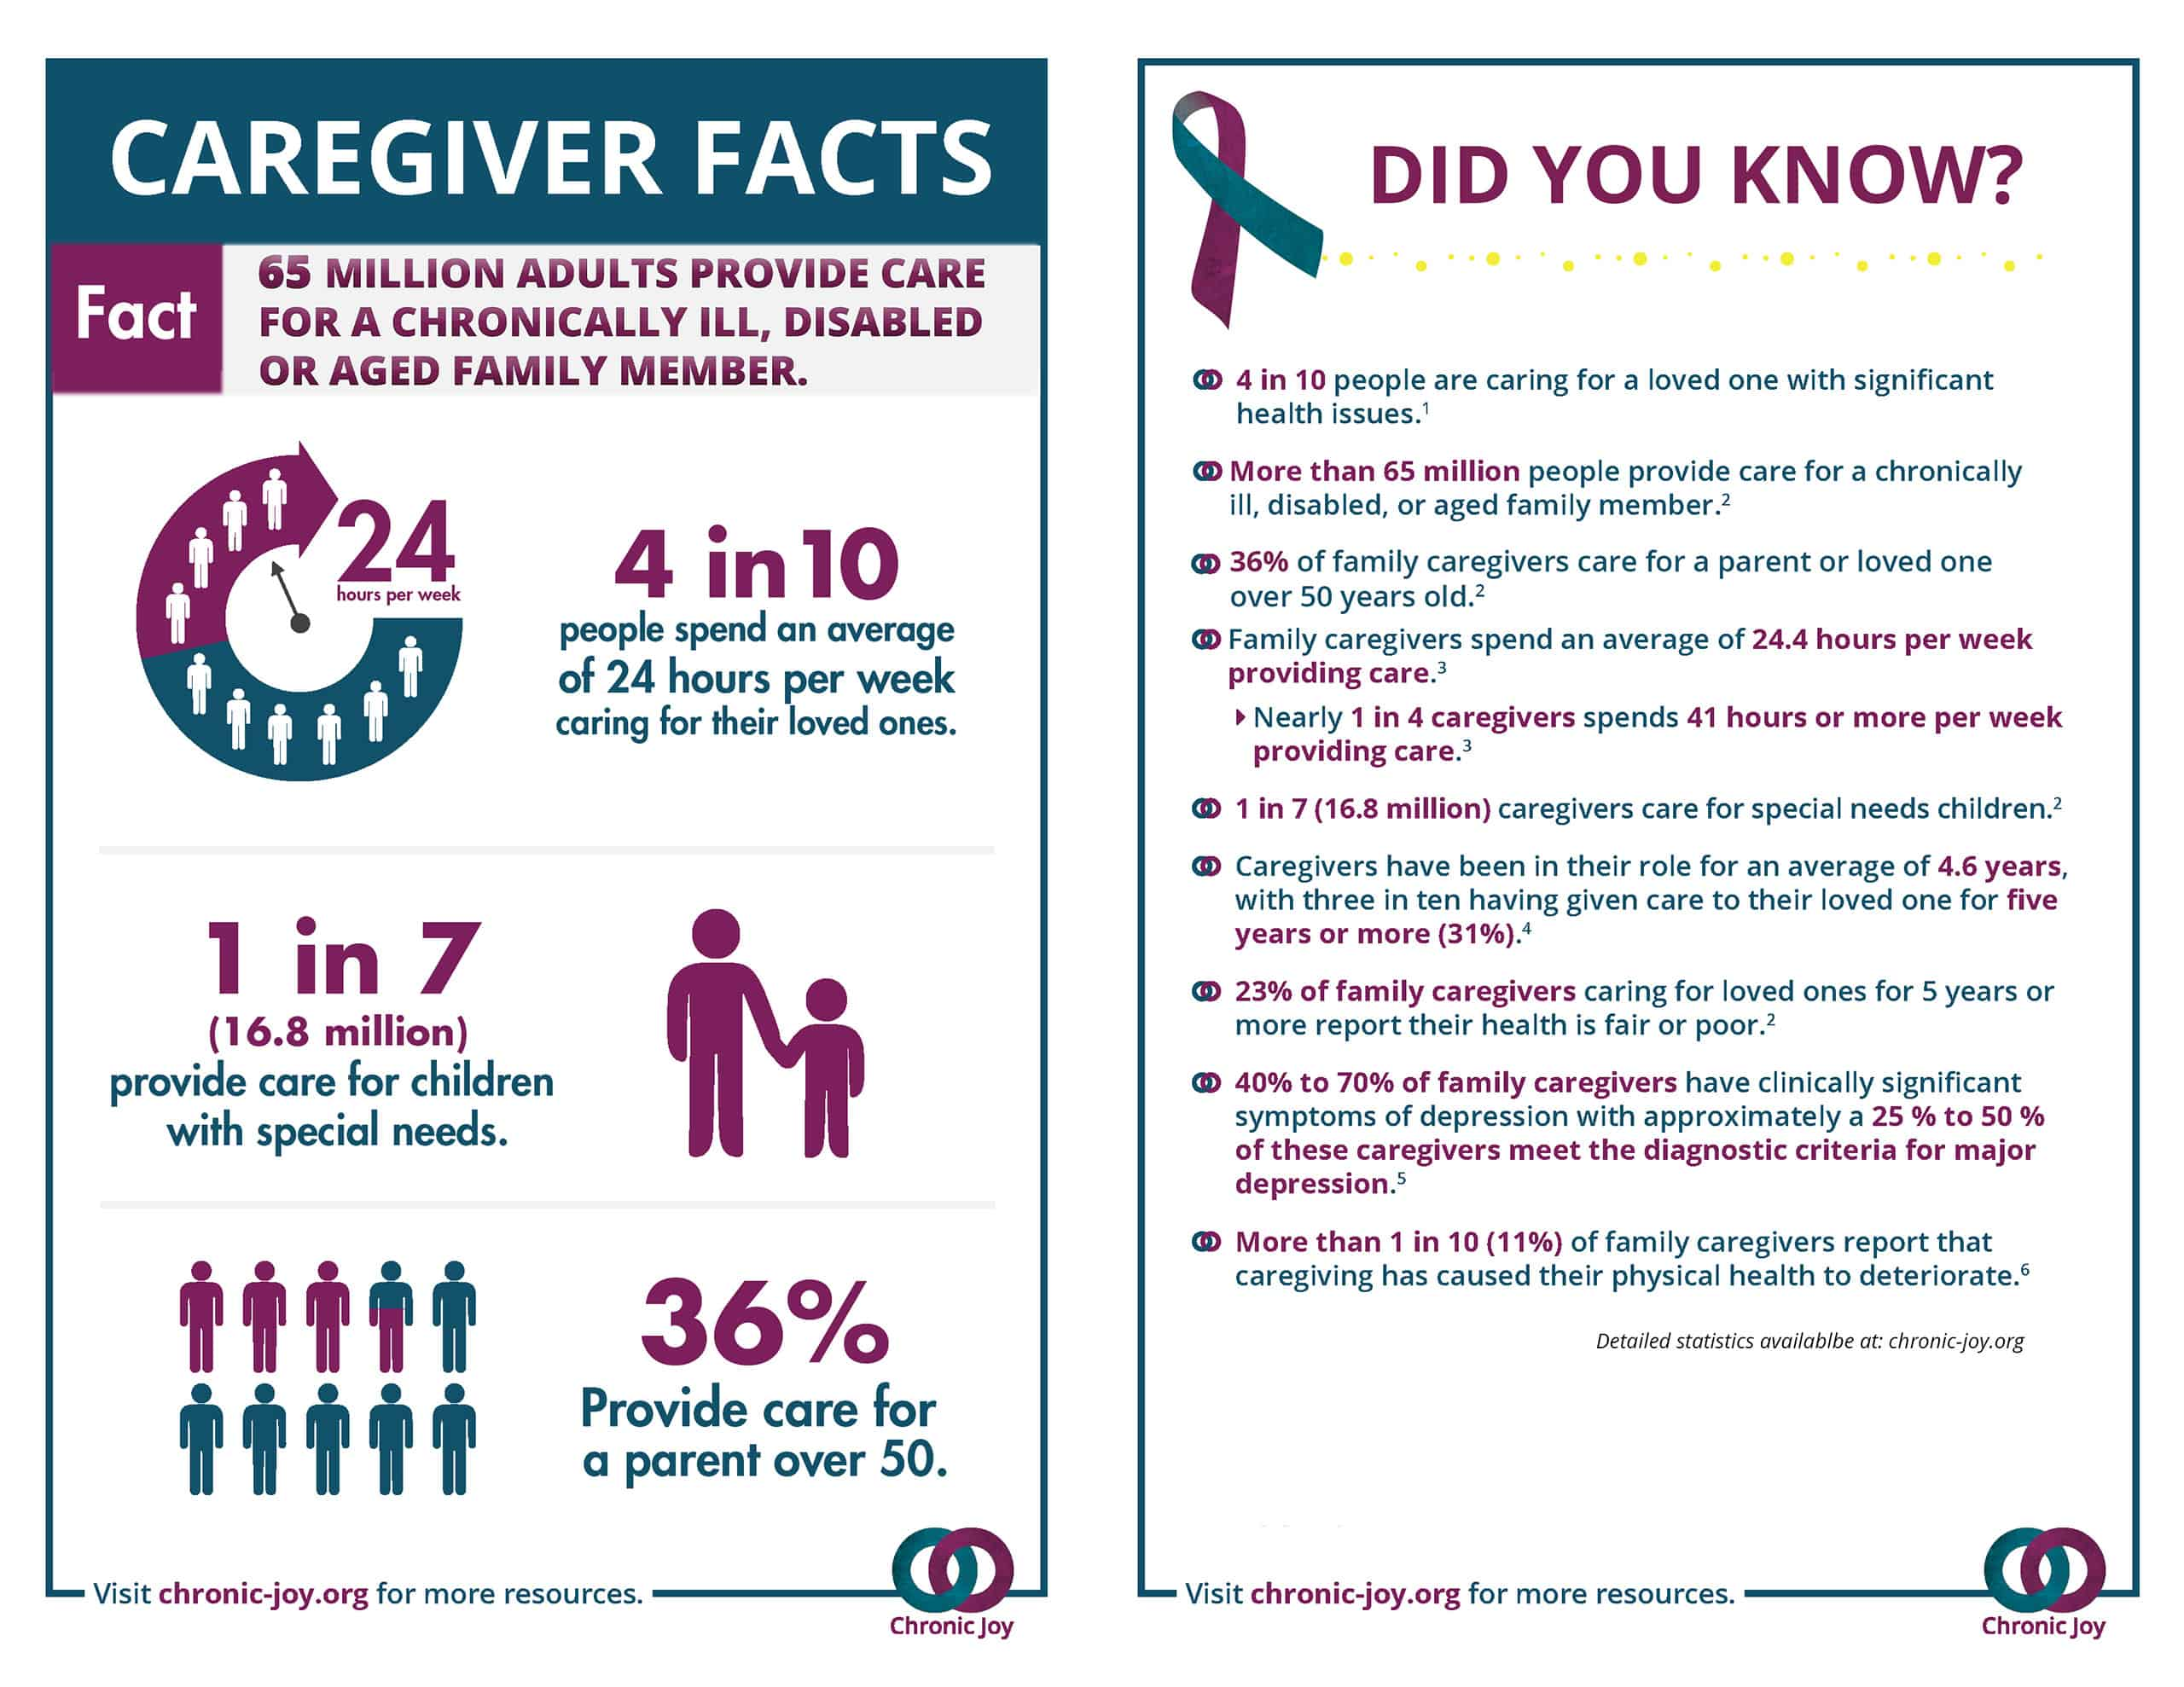 Caregiver Facts